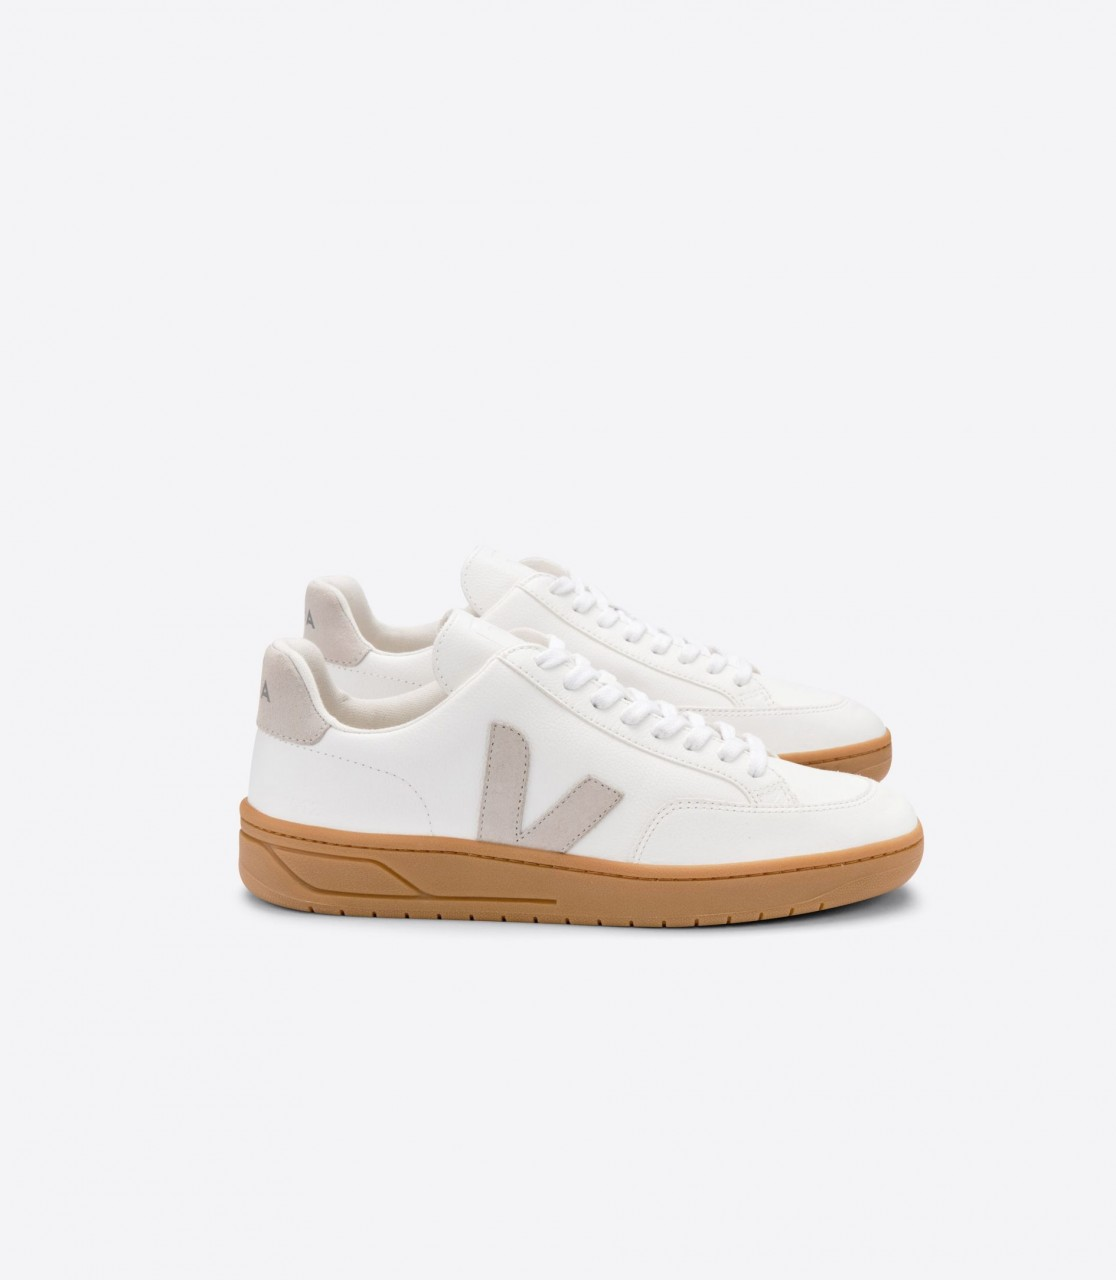 V-12 LEATHER EXTRA WHITE NATURAL GUM SOLE